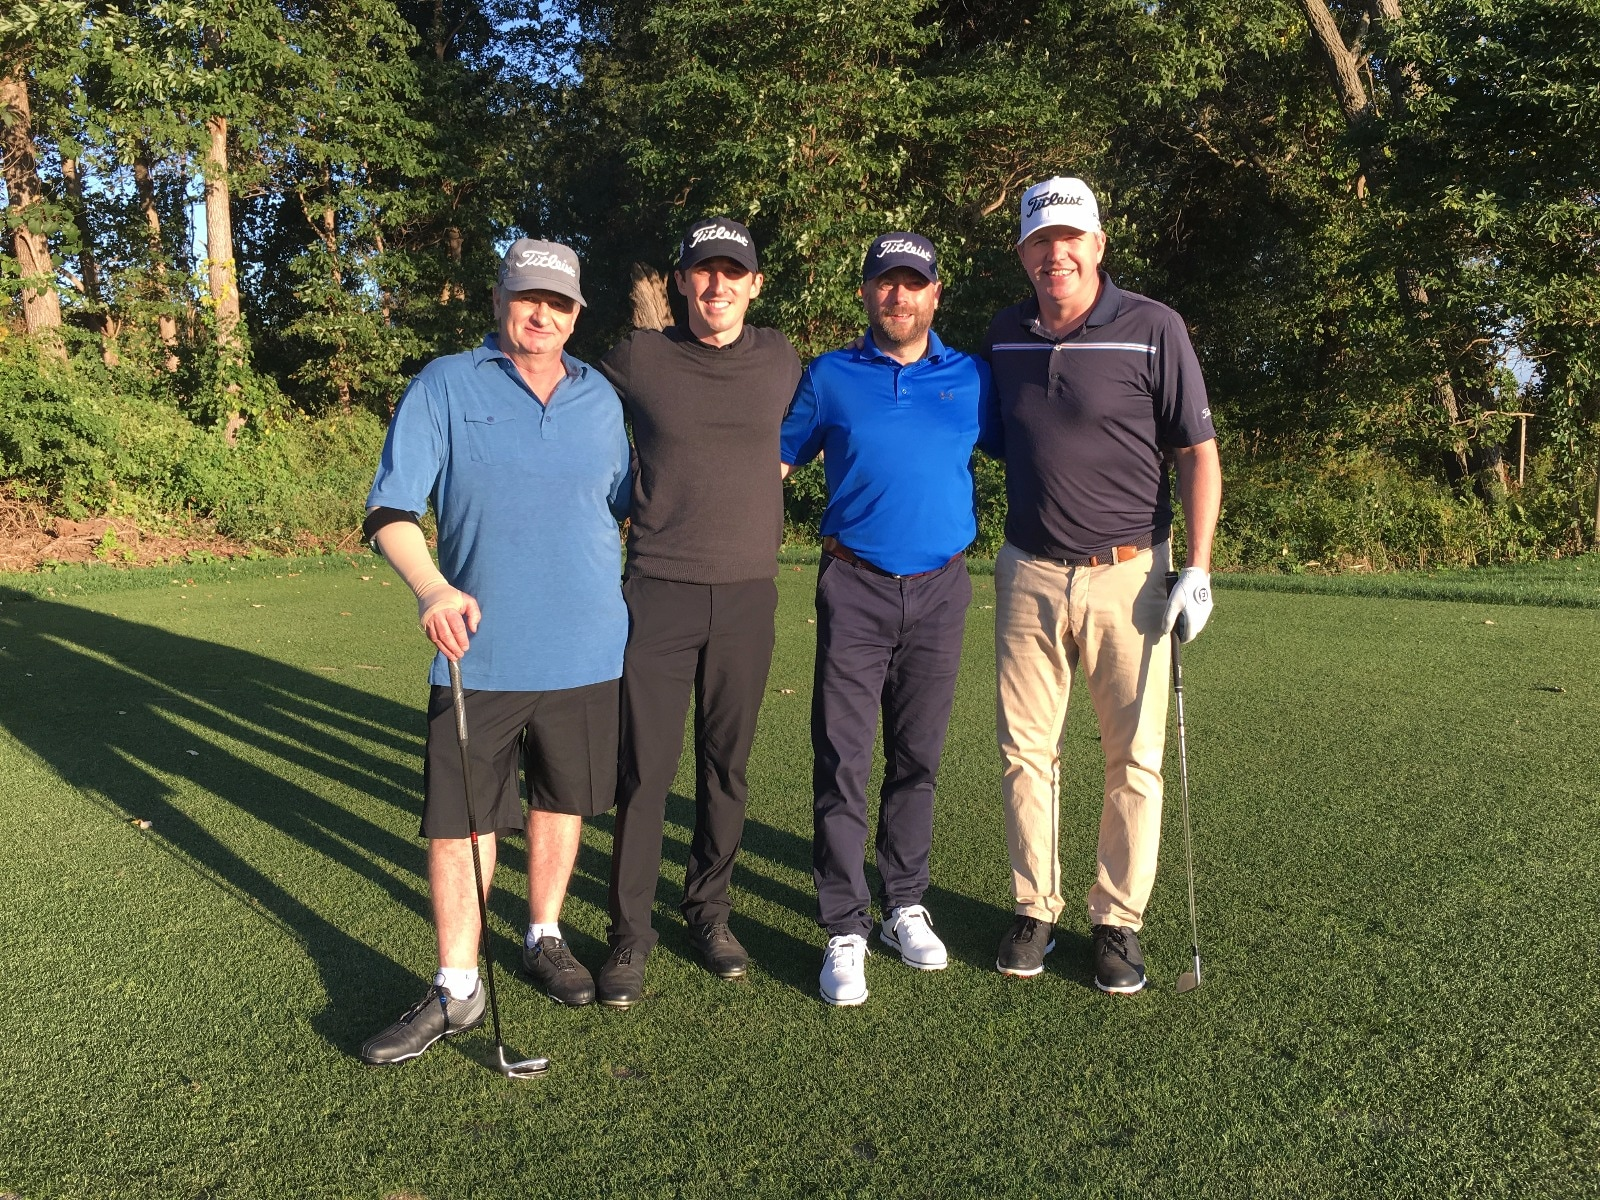 Richard and his playing partners.